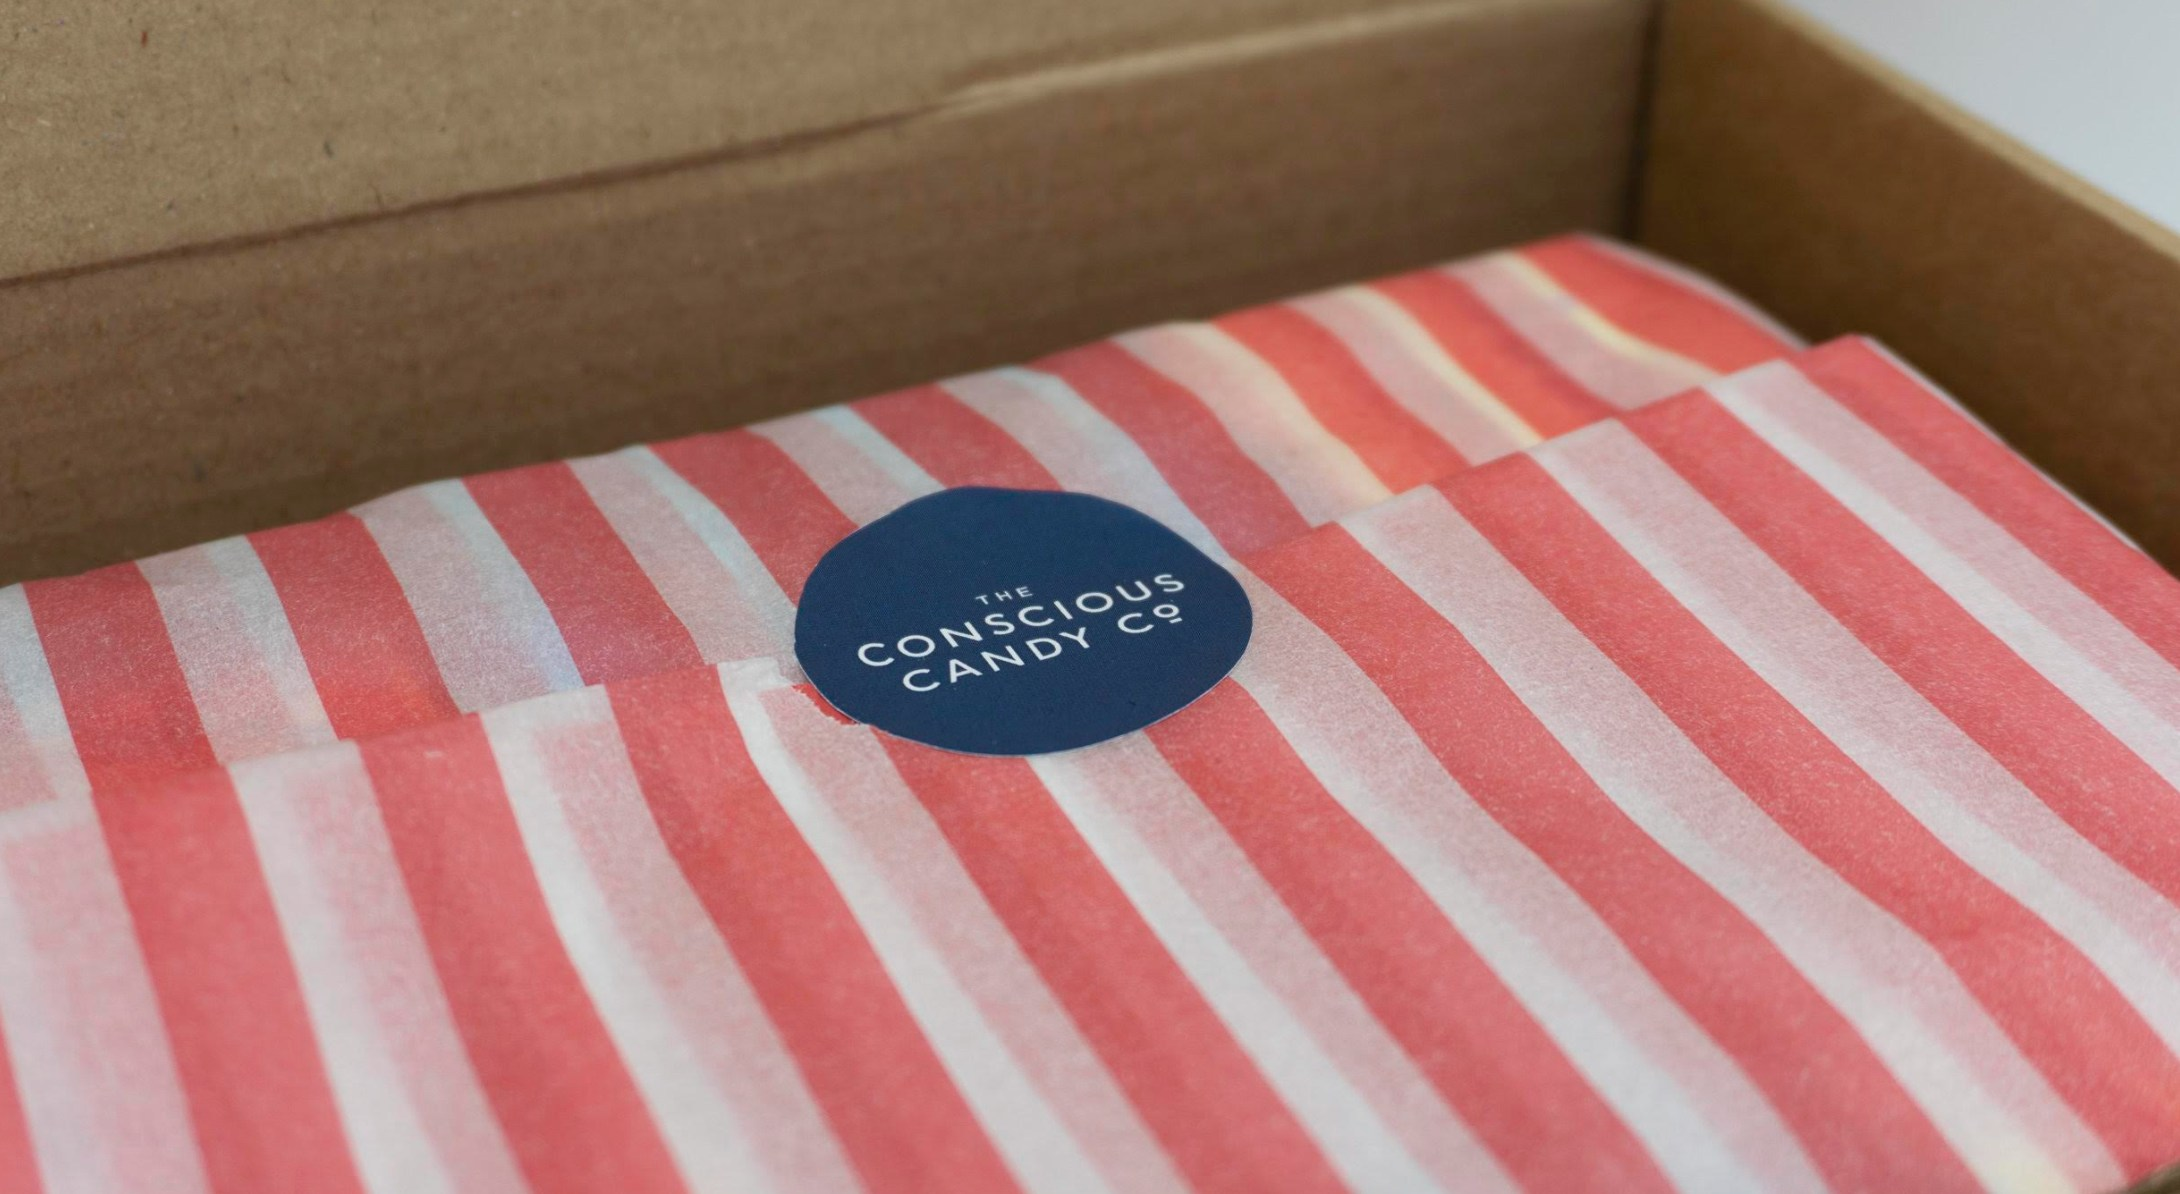 Packaging from The Conscious Candy Company